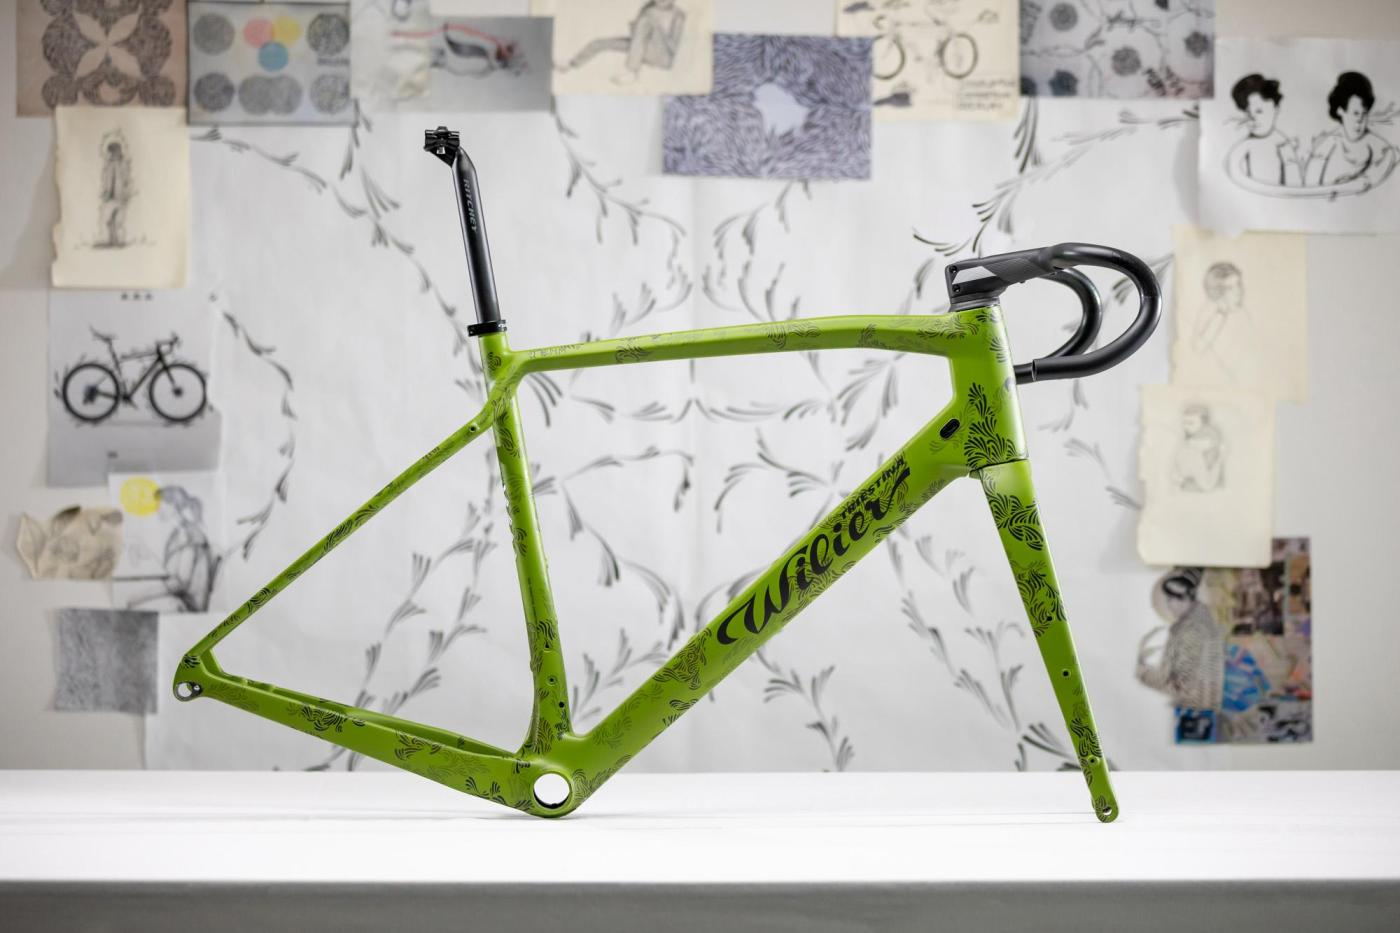 DKlein x Wilier Triestina JENA Jungle DCO Gravel Bike 27